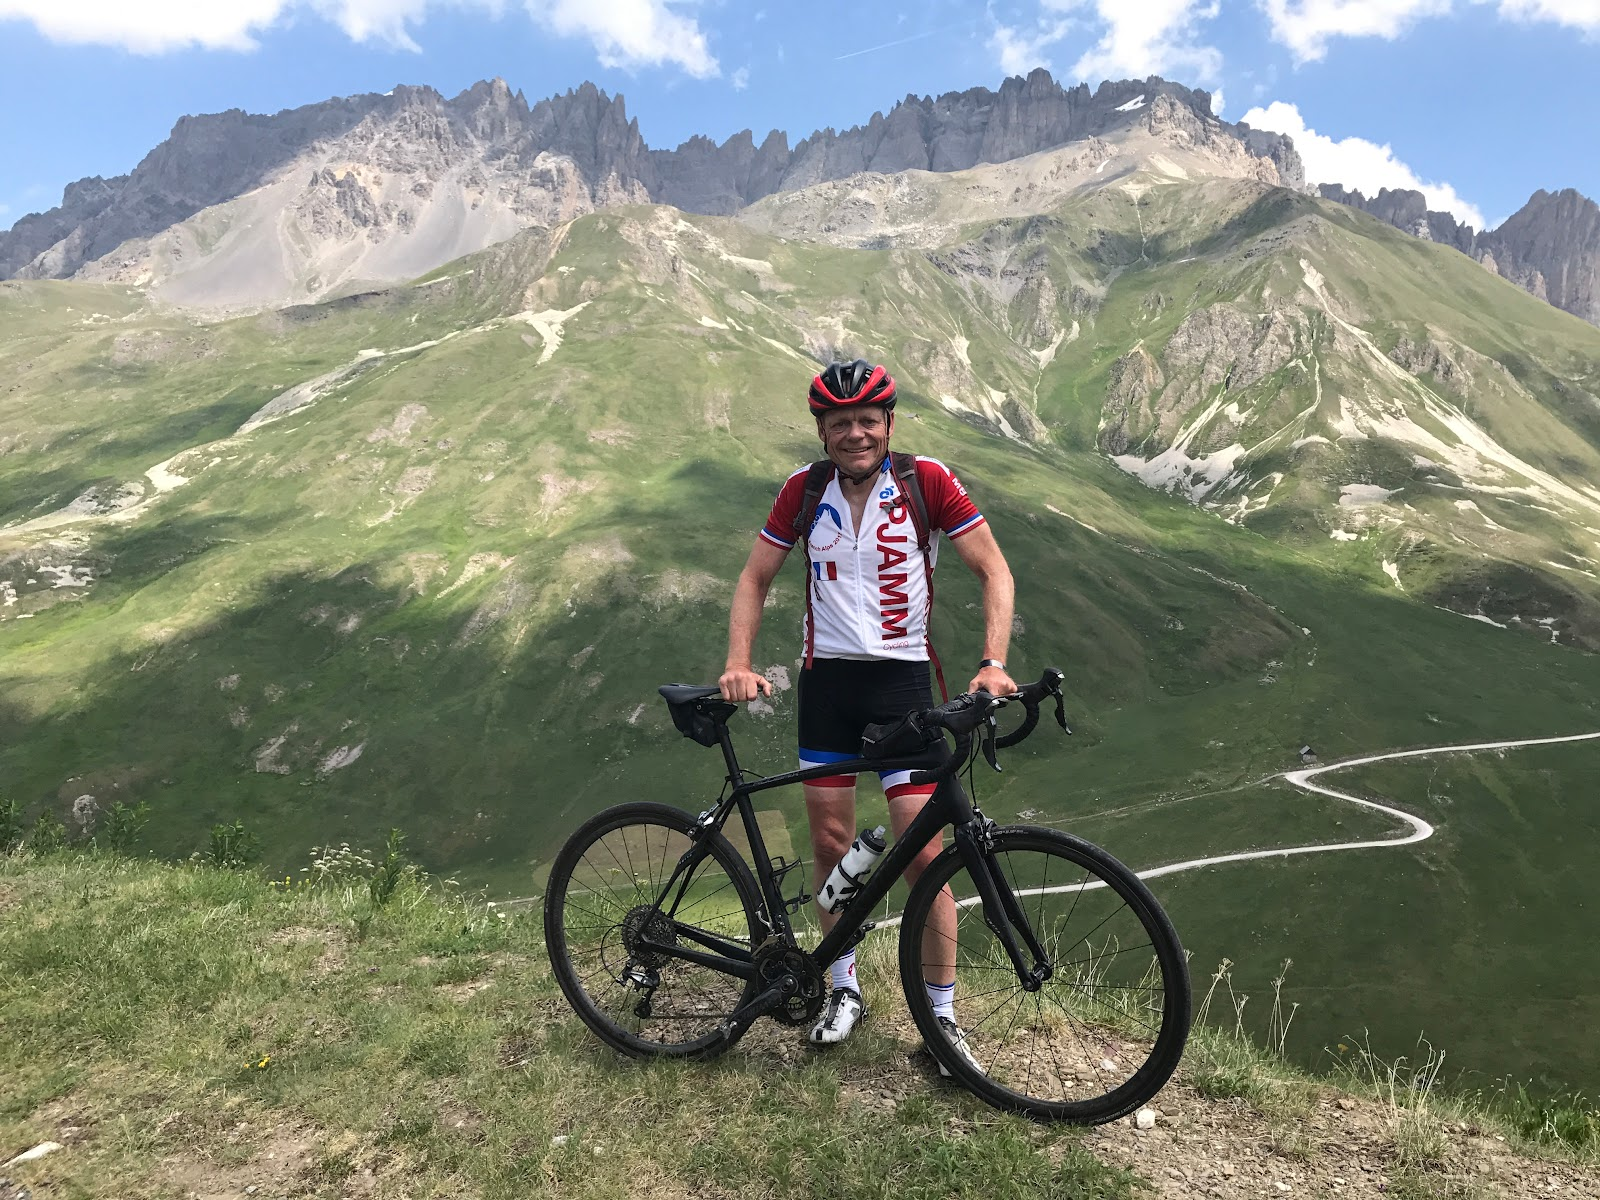 Climbing Col du Galibier - from Valloire by bike - John Johnson of PJAMM with bike and road, mountains in background